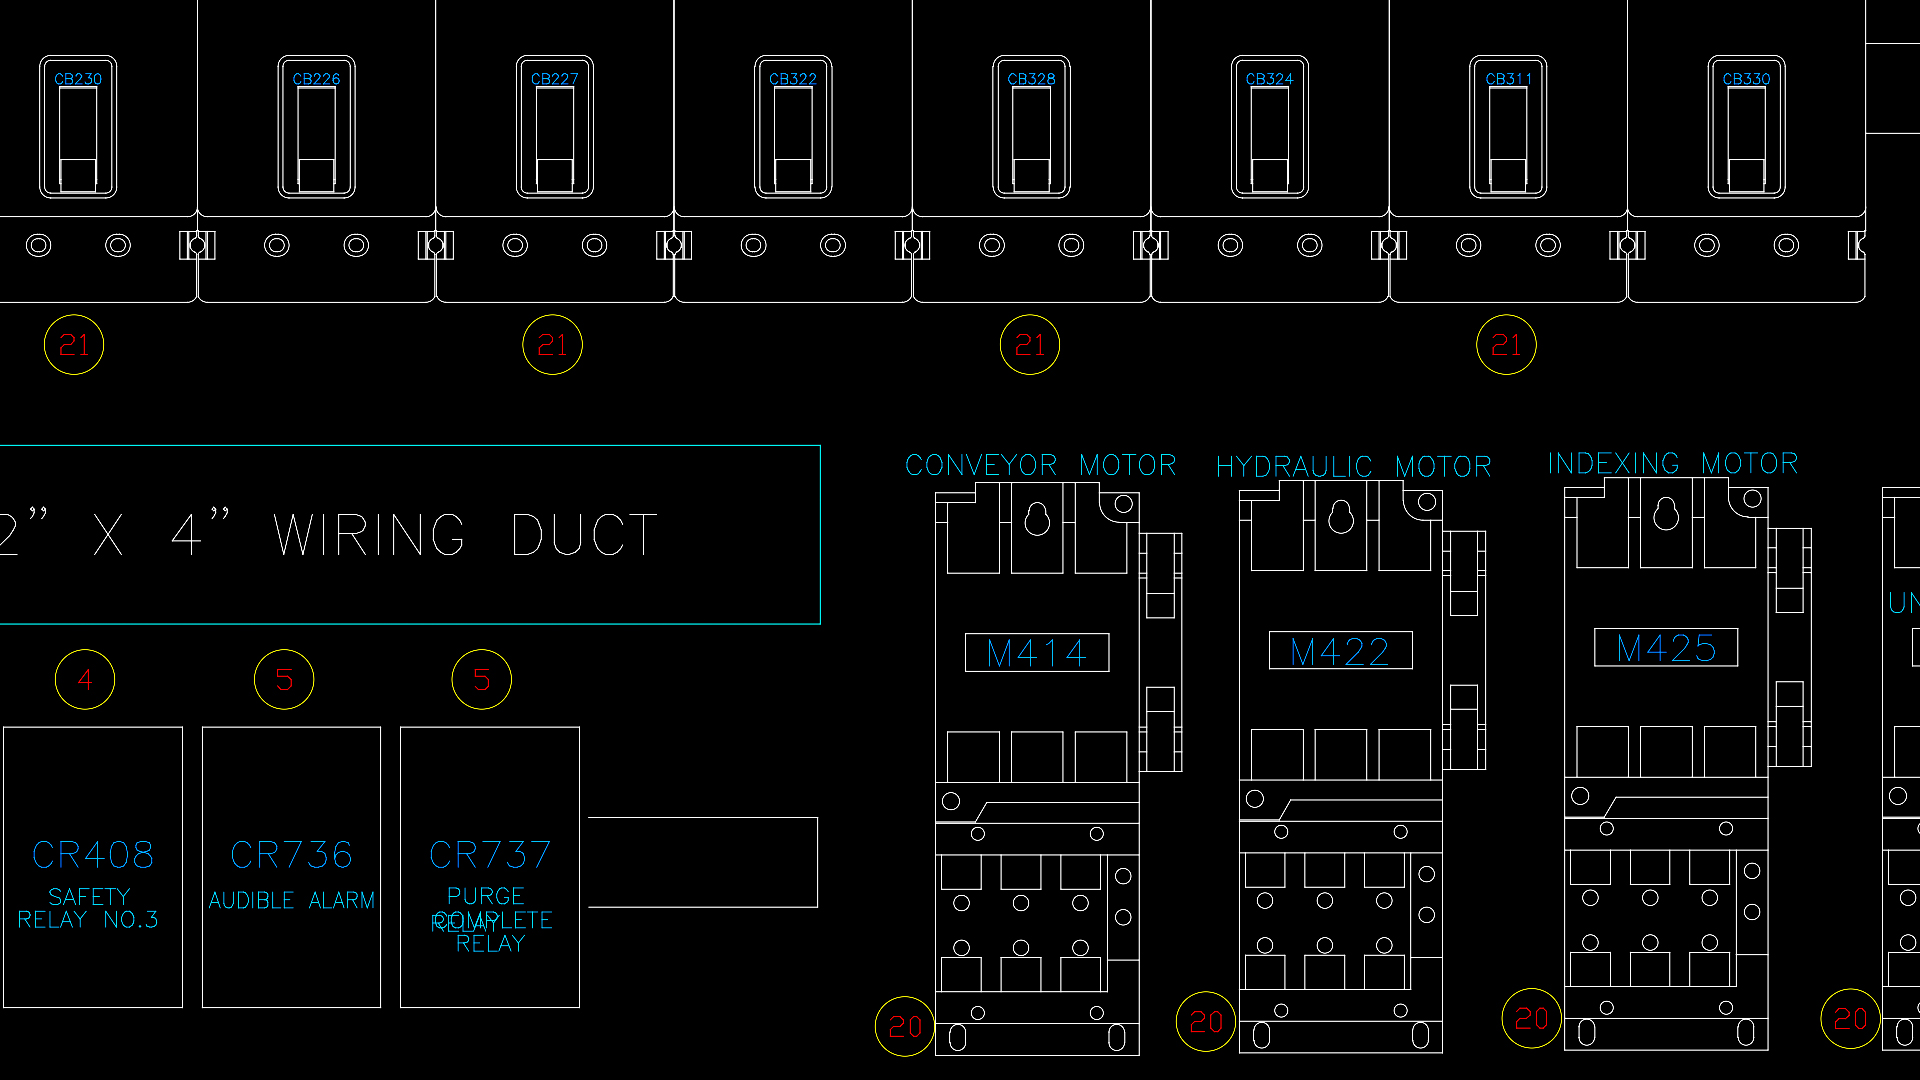 automated electrical drawing using autocad electrical 2016 Wiring Diagram Cad electrical drawing using cad the wiring diagram, electrical drawing wiring diagram cad